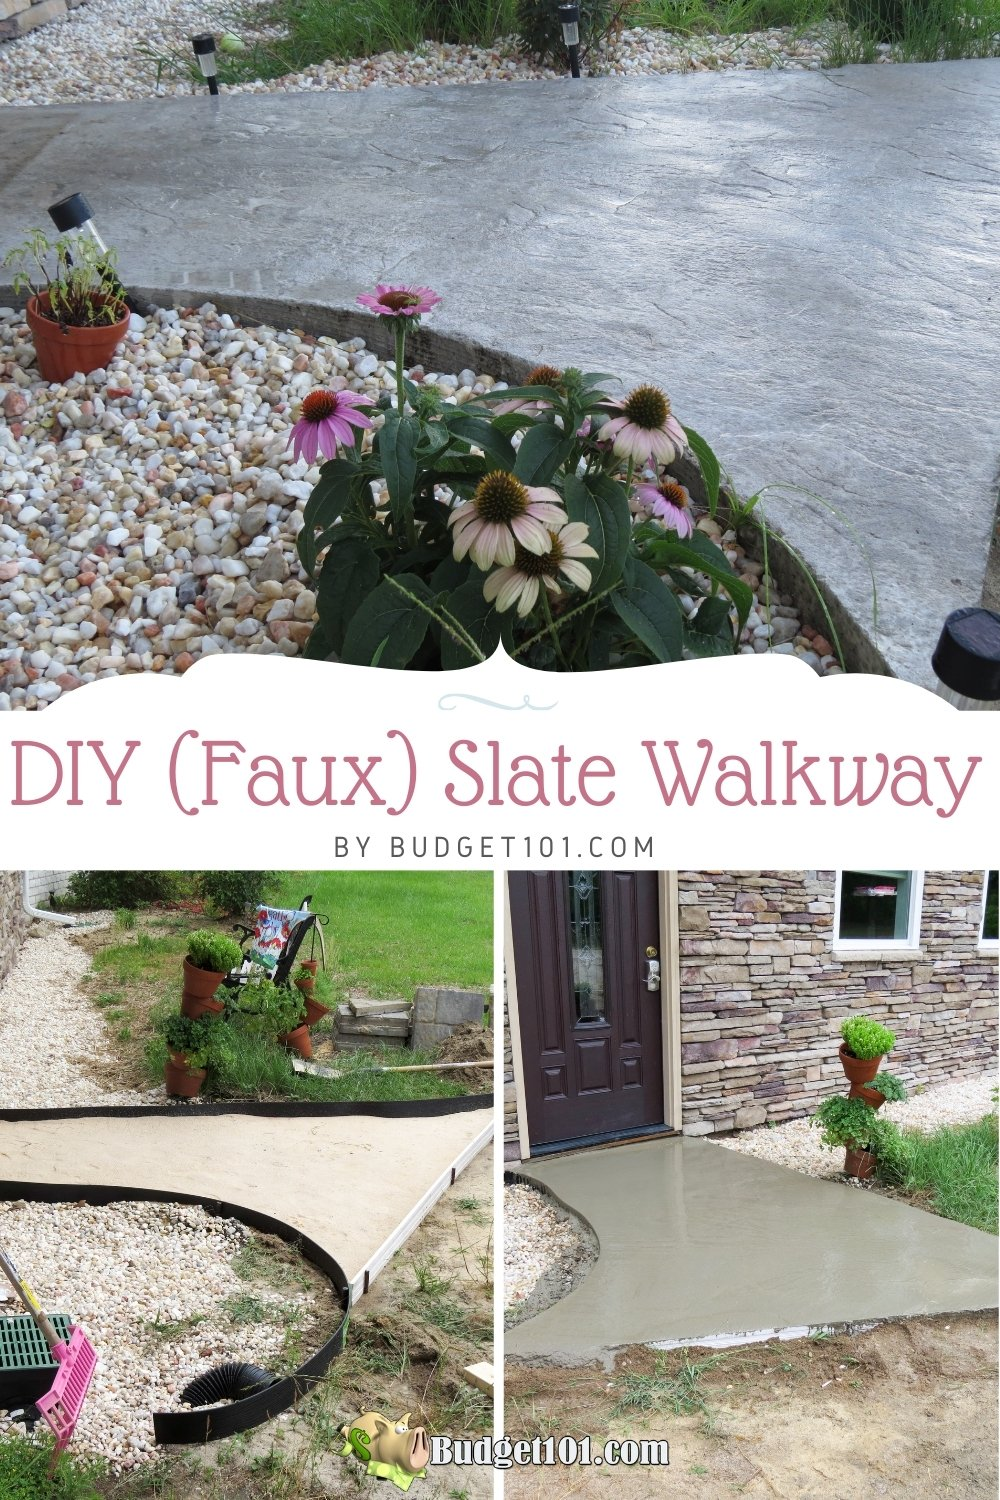 This DIY (faux) Slate Walkway can save you hundreds of dollars & it's pretty darn easy to recreate! #DIY #Walkway #FauxSlate #TexturedWalkway #Concrete #Budget101